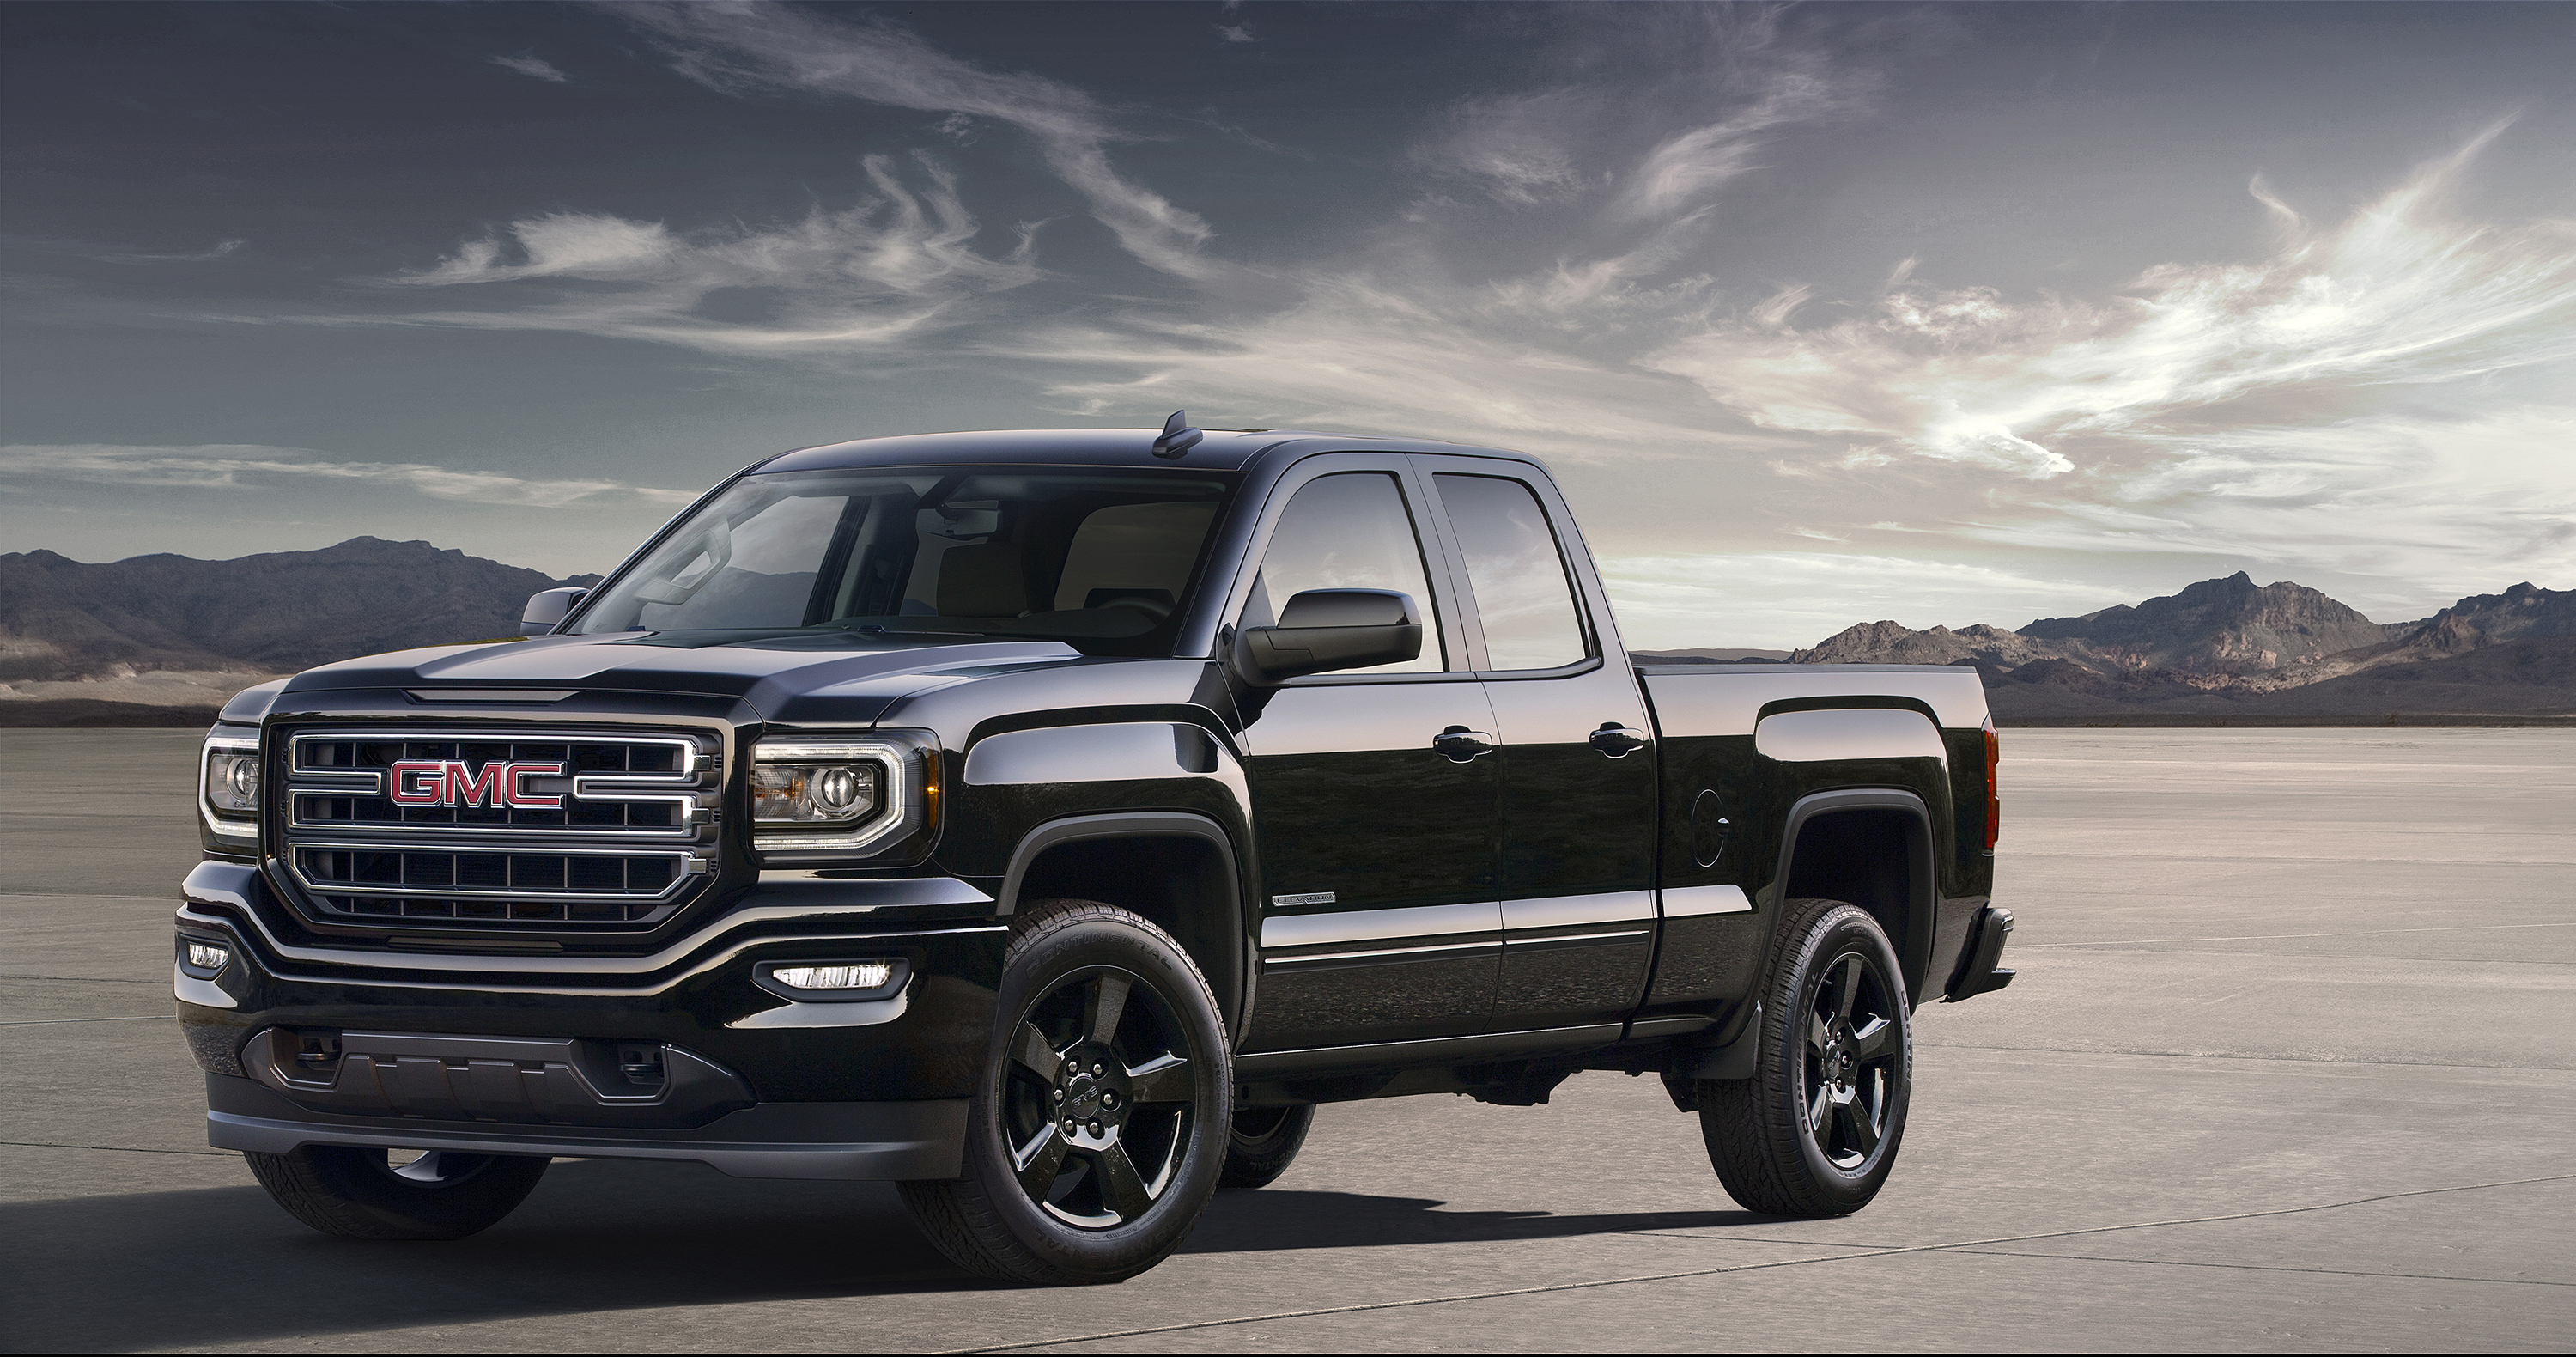 2016 Gmc Sierra Elevation Edition General Motors